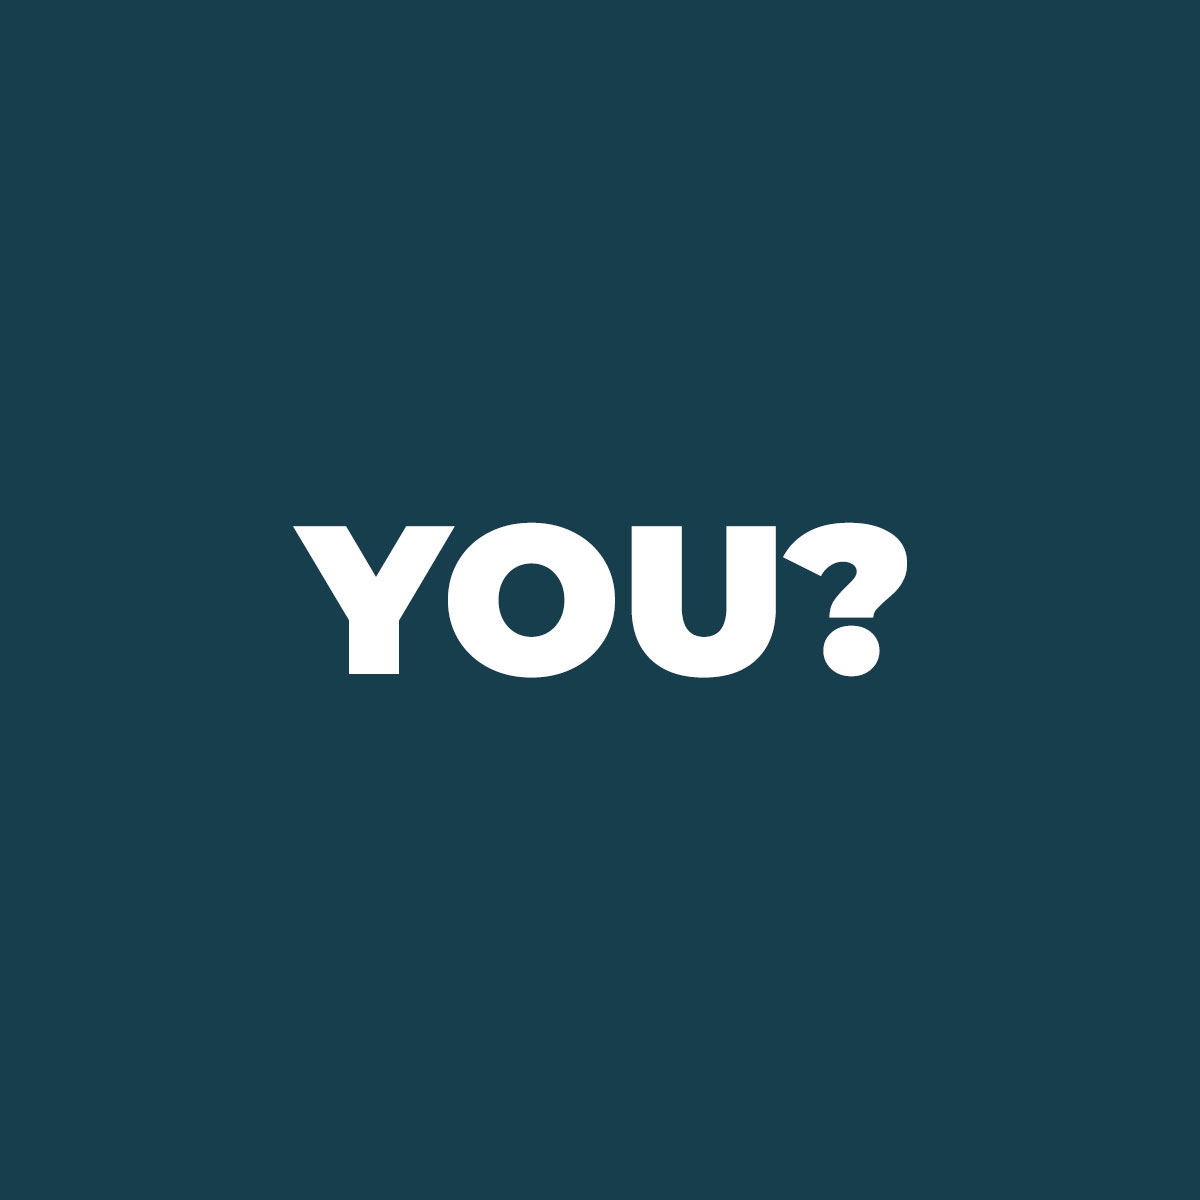 The word 'You' on a dark blue background